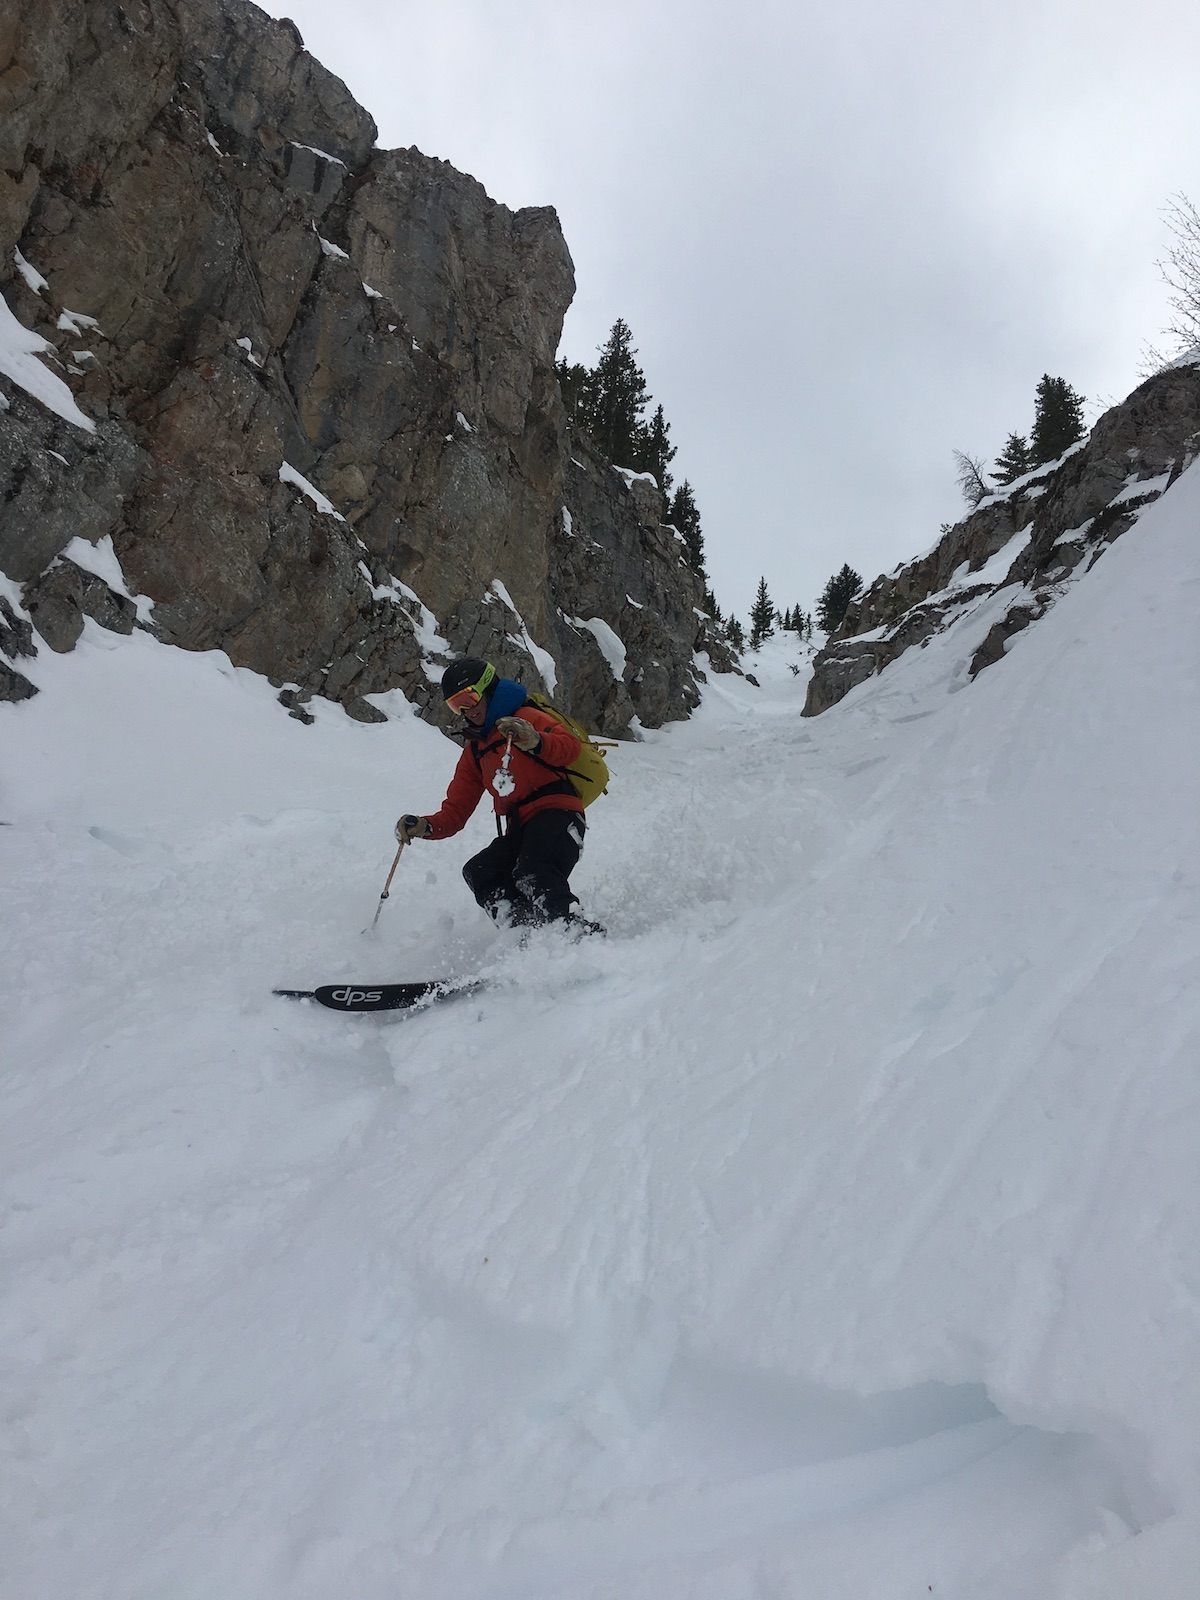 Person skiing down a chute